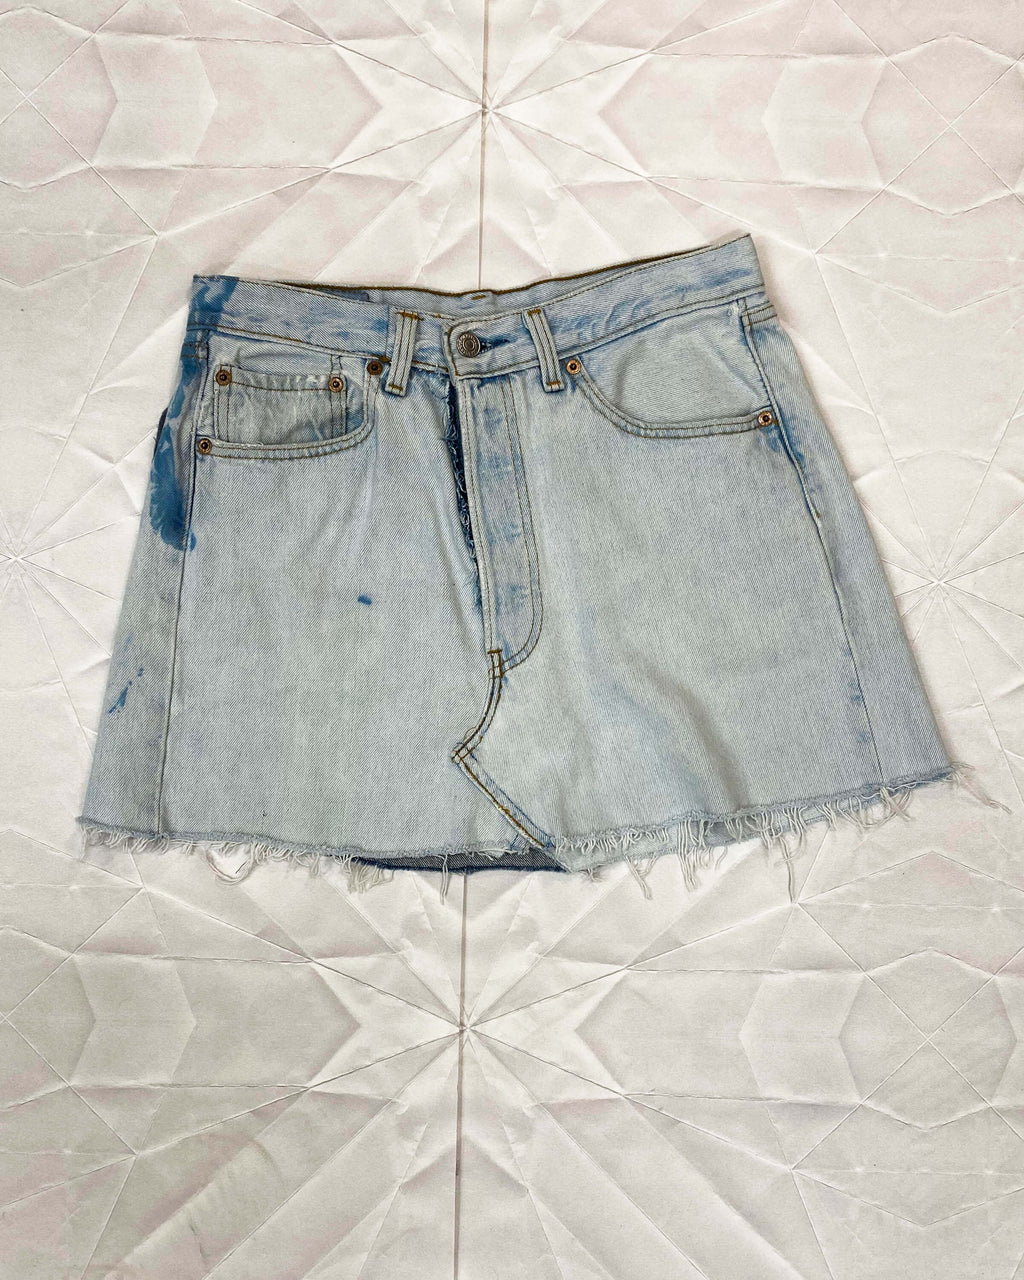 Recycled Patchwork Levi's Denim Skirt